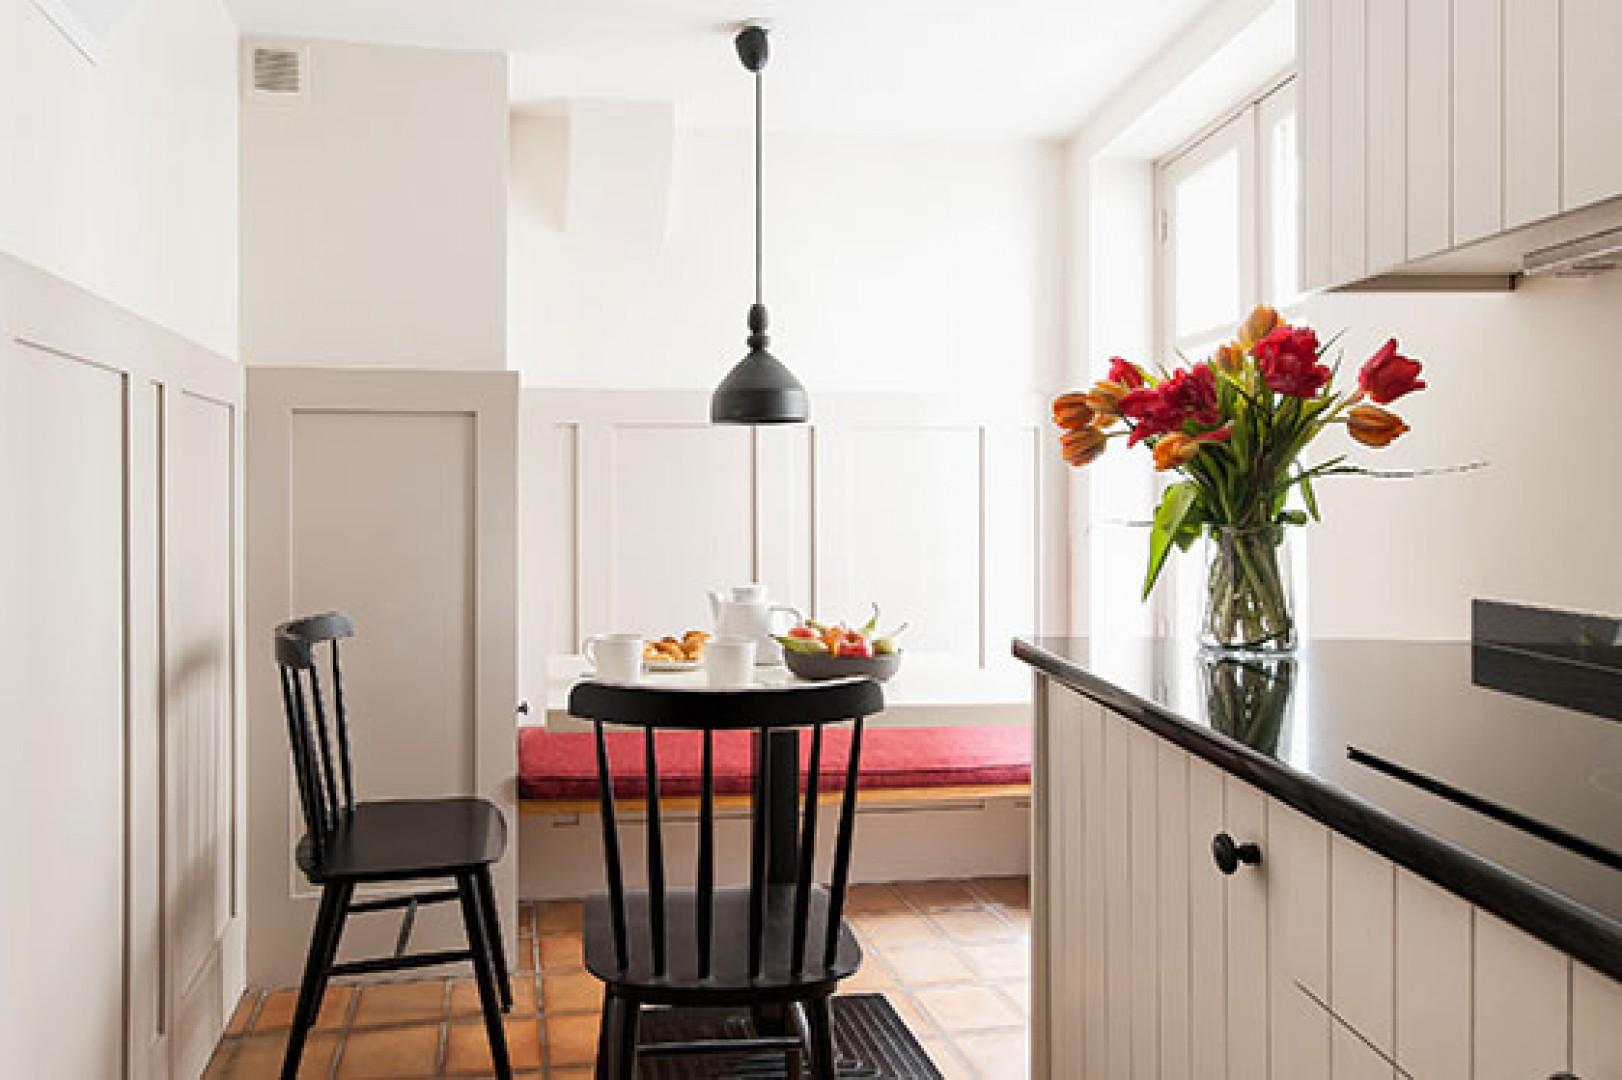 The dining area features a clever built-in bench seat.